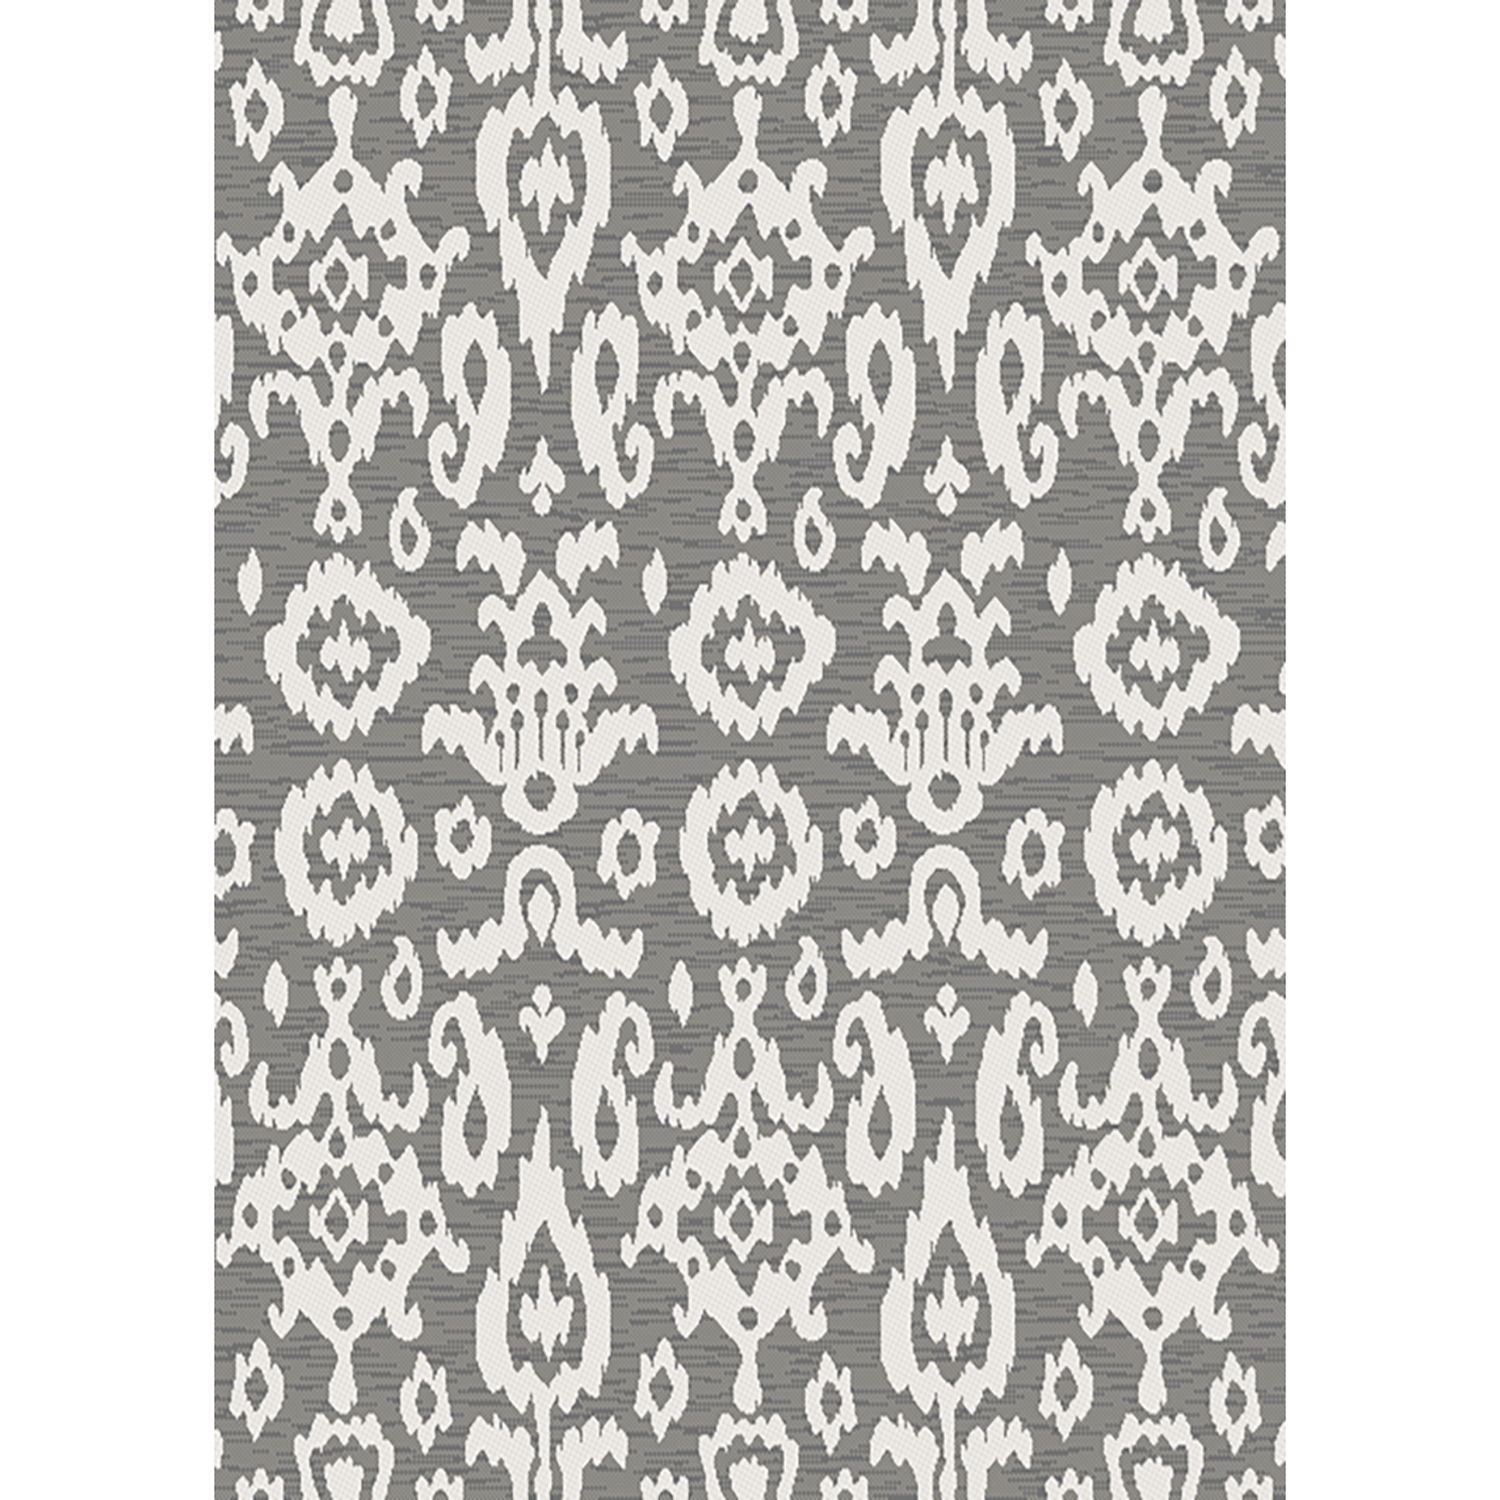 Easy Clean Grey Ikat 5x8 Rug Central